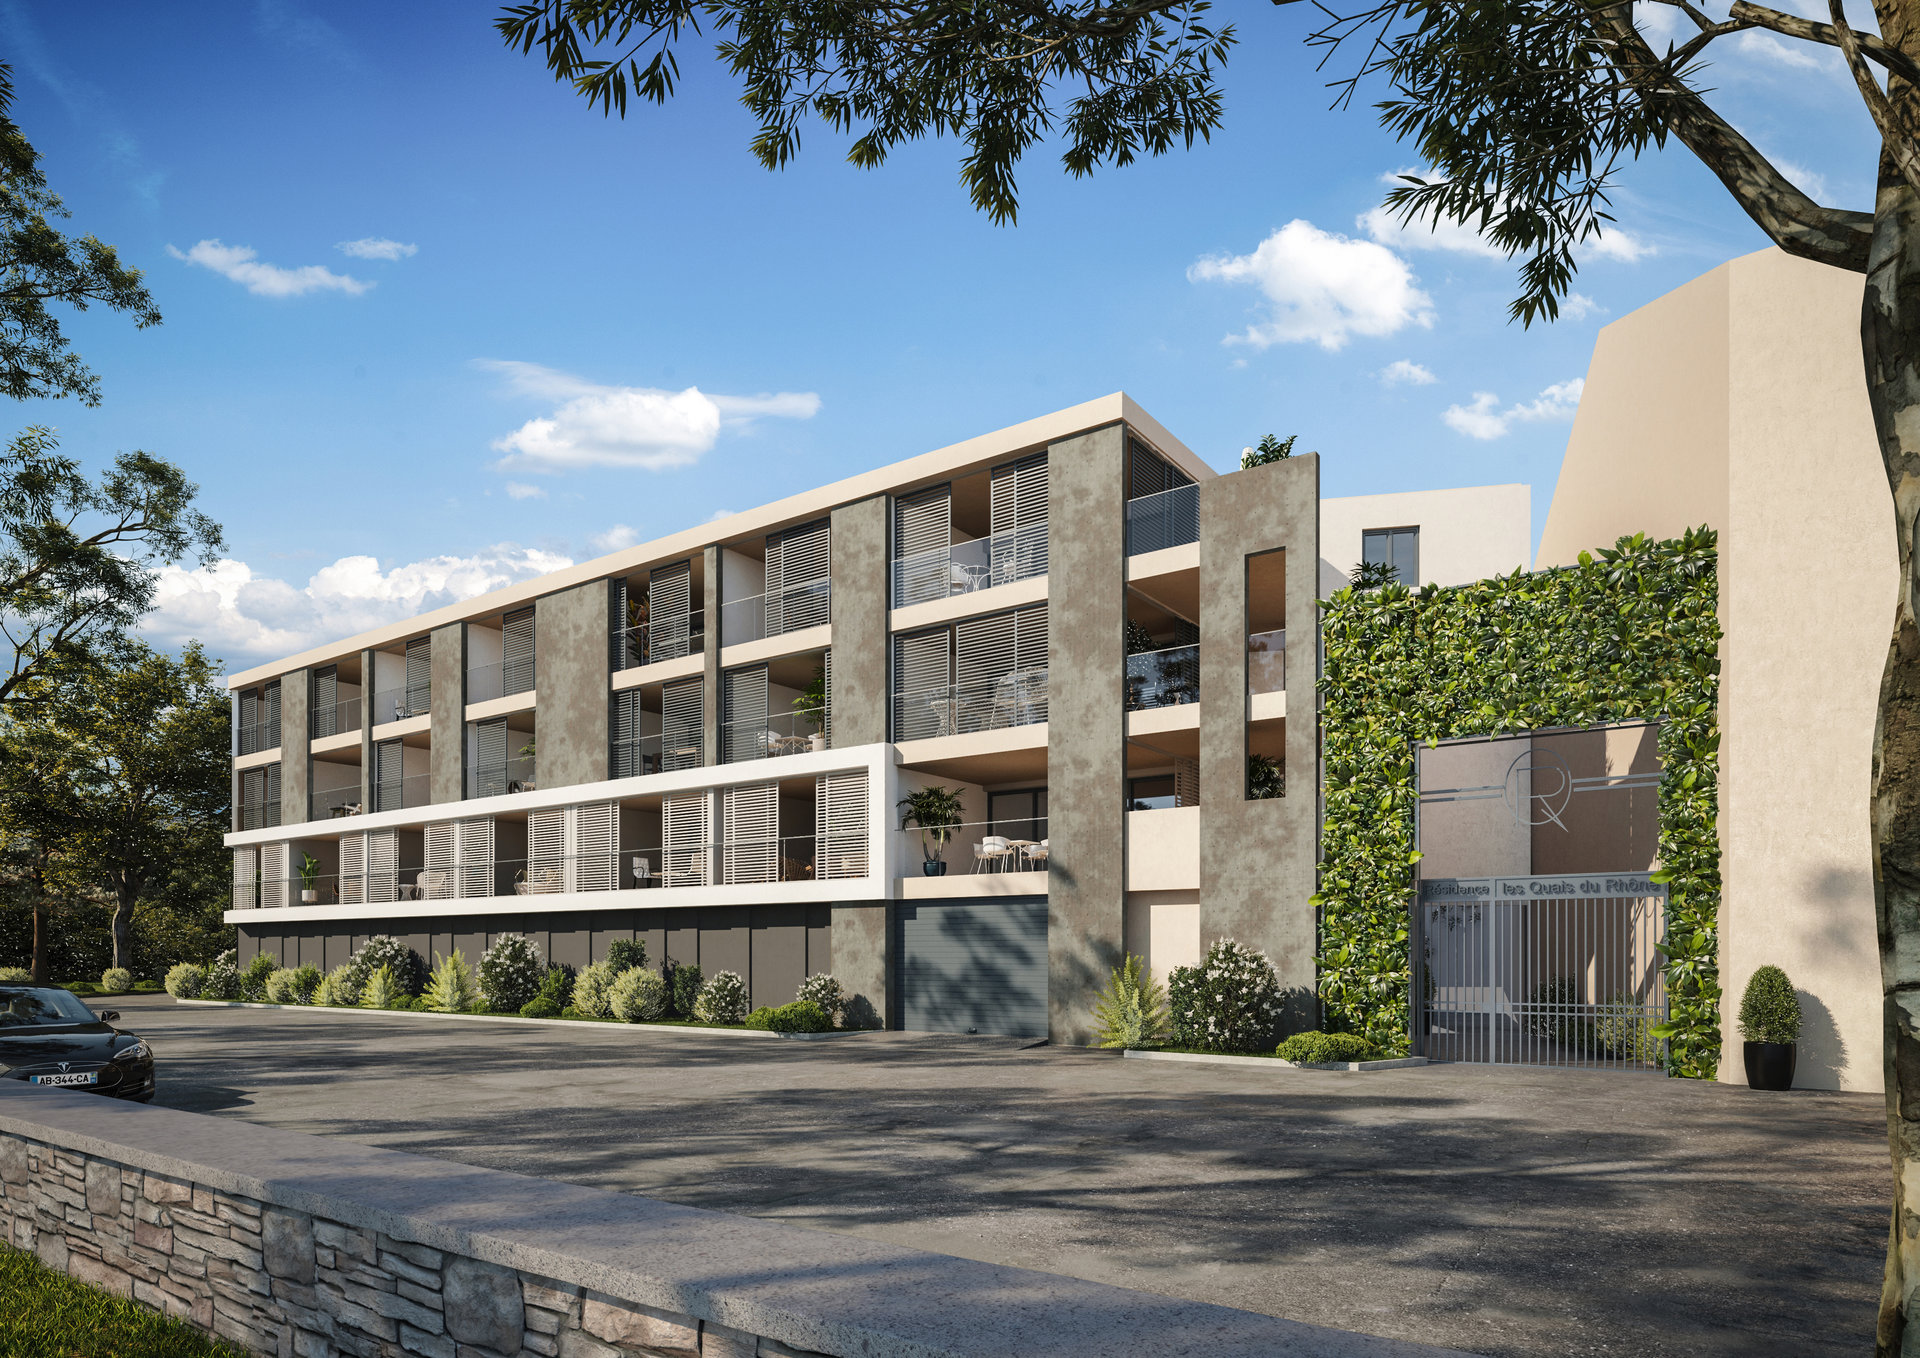 SALE BEFORE COMPLETION - LUXURY FLATS OVERLOOKING THE RHONE